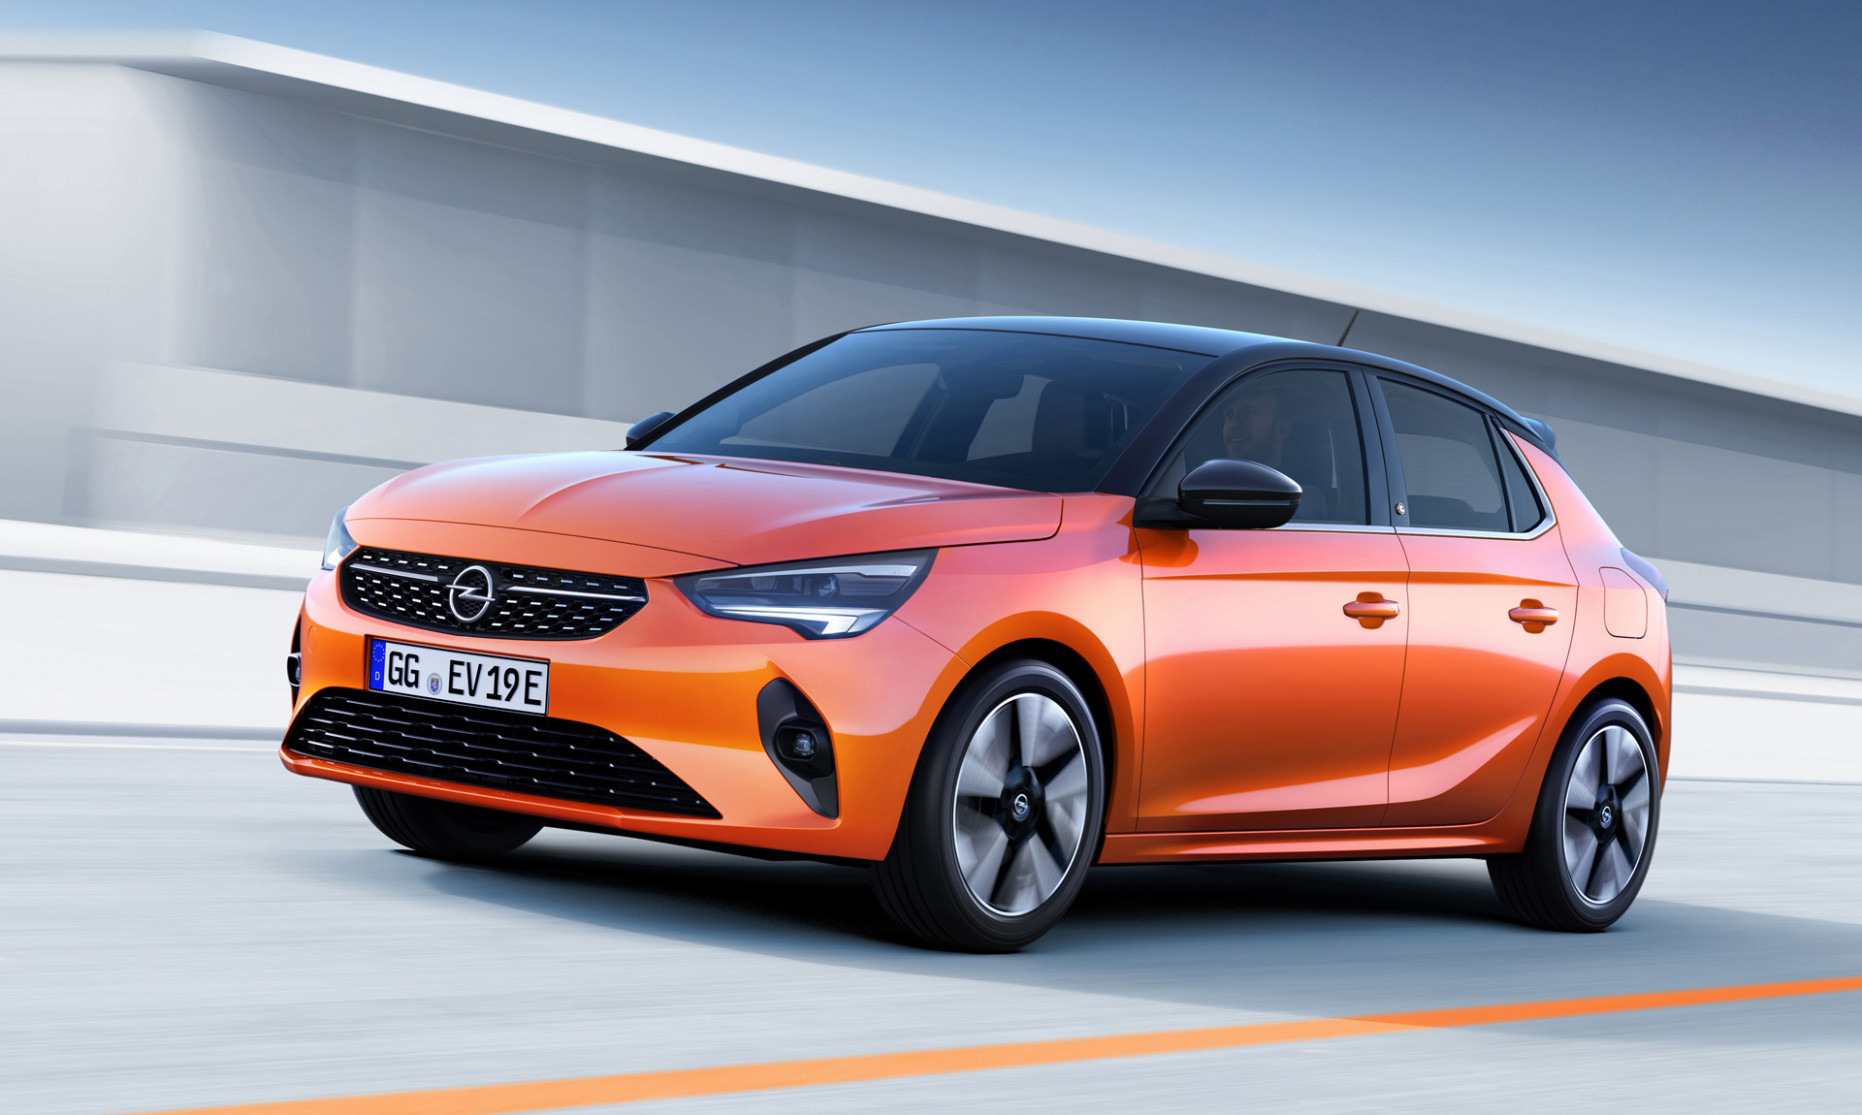 Redesign and Review Opel Corsa F 2022